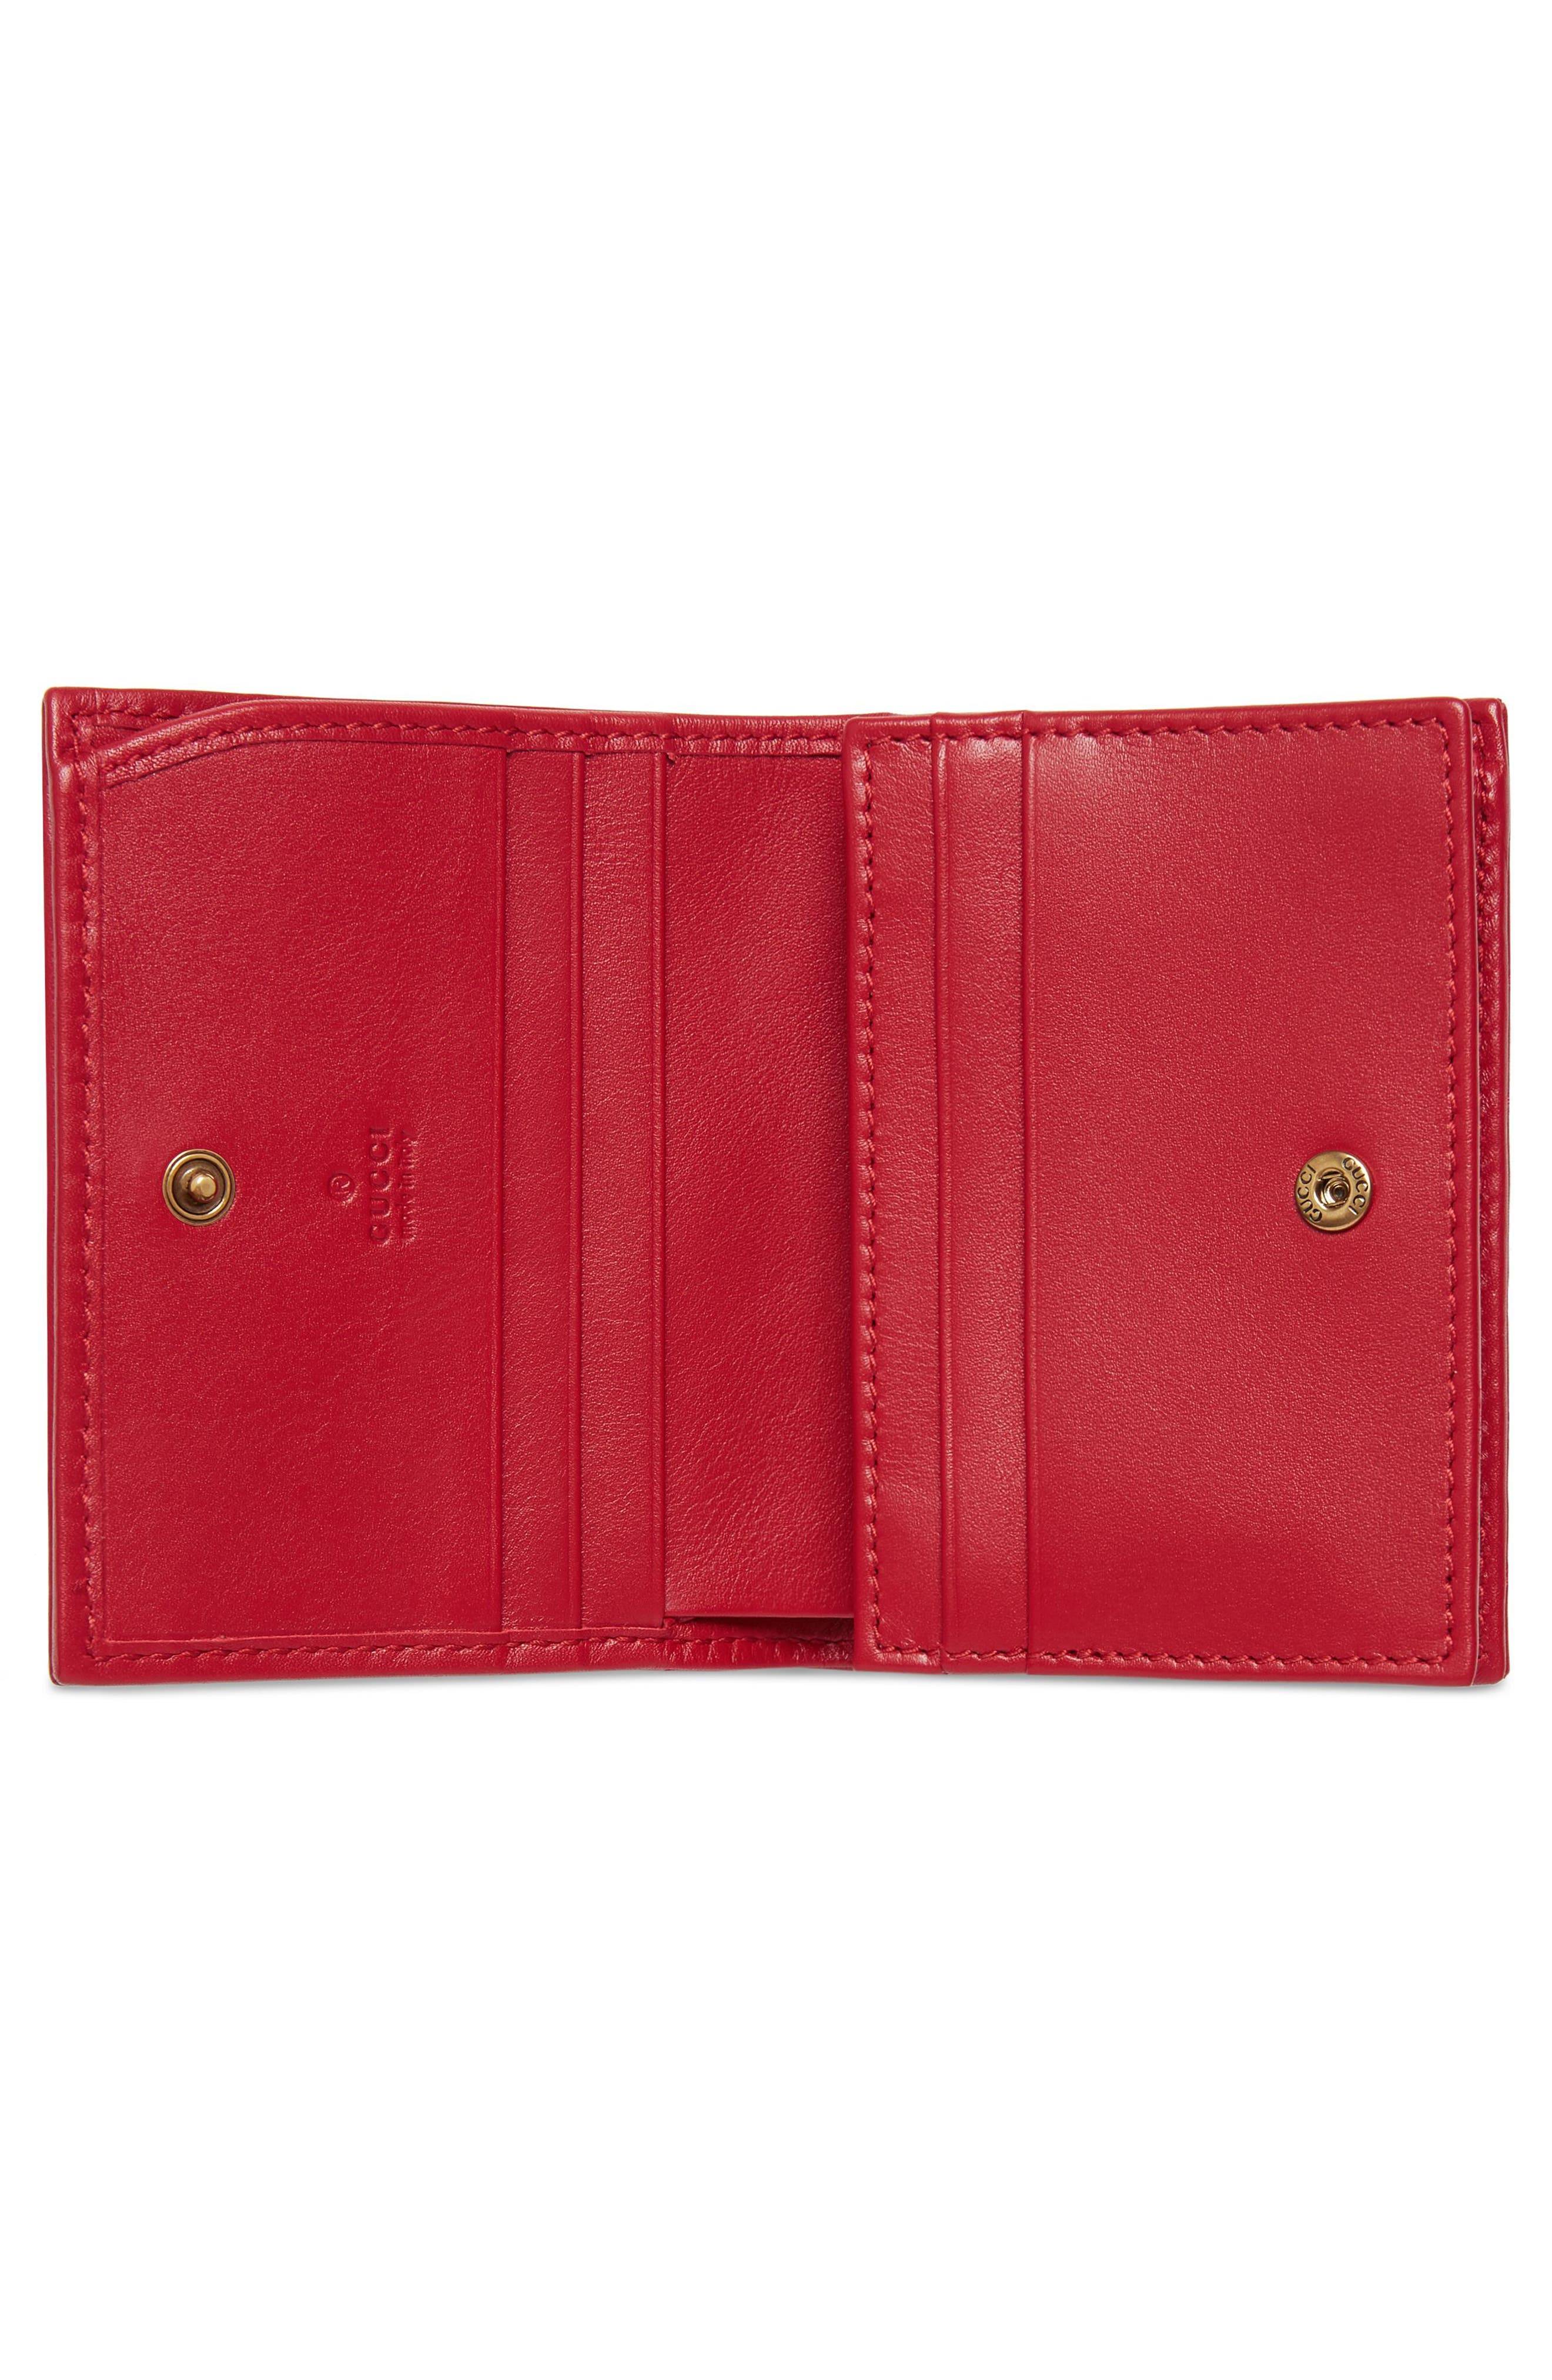 GG Marmont Matelassé Leather Card Case,                             Alternate thumbnail 2, color,                             Hibiscus Red